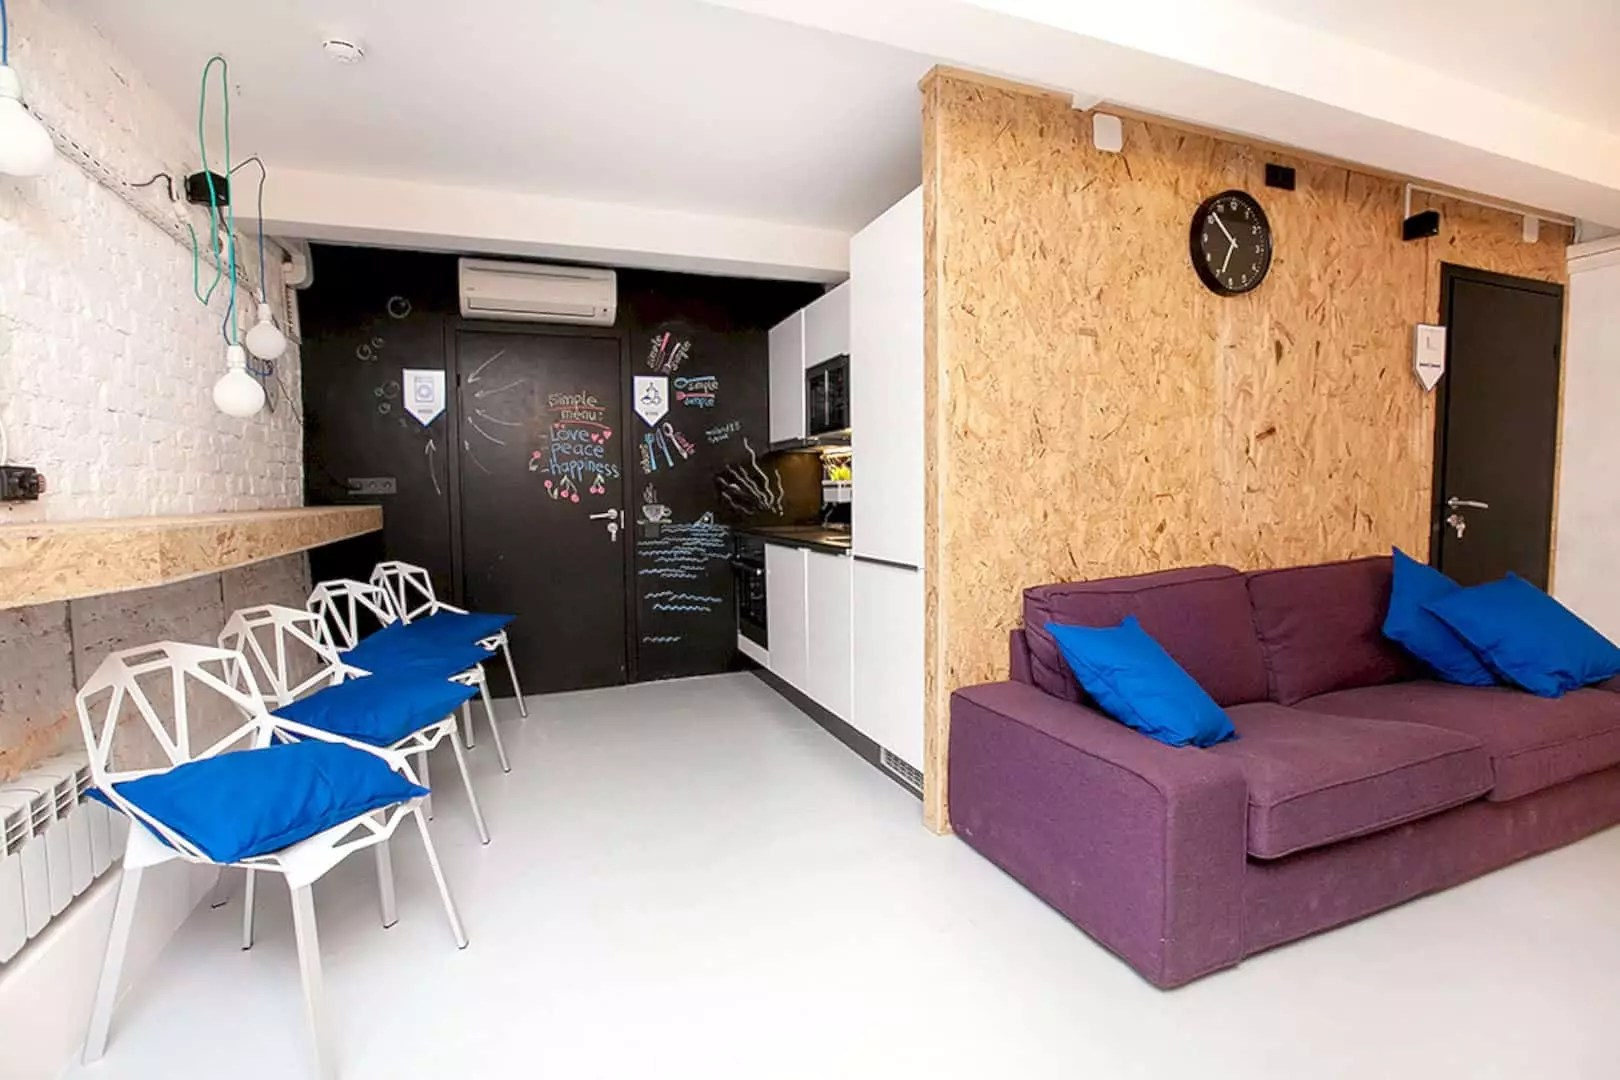 SIMPLE Hostel: A Colorful Hostel with Simple Interior and Eco-Design Concept